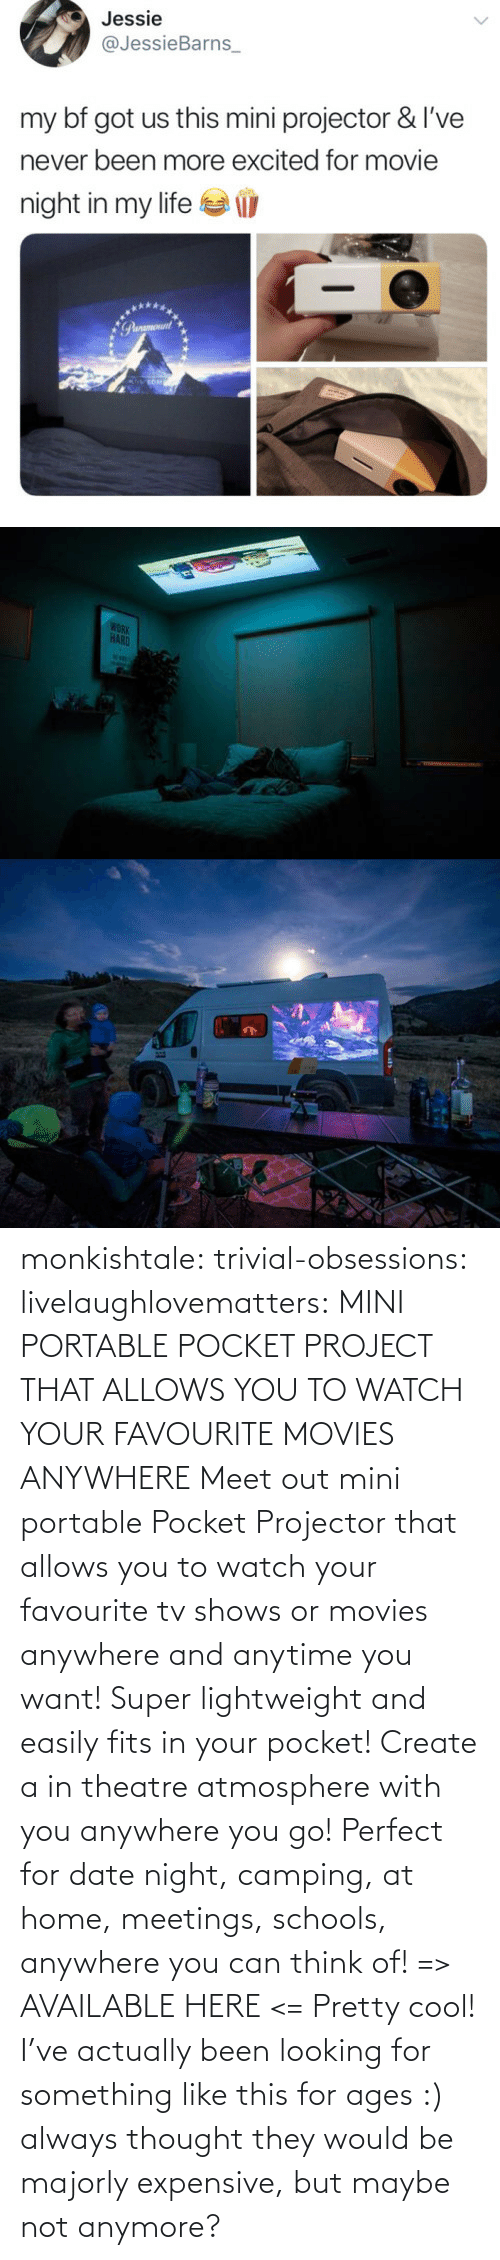 looking: monkishtale: trivial-obsessions:   livelaughlovematters:   MINI PORTABLE POCKET PROJECT THAT ALLOWS YOU TO WATCH YOUR FAVOURITE MOVIES ANYWHERE Meet out mini portable Pocket Projector that allows you to watch your favourite tv shows or movies anywhere and anytime you want! Super lightweight and easily fits in your pocket! Create a in theatre atmosphere with you anywhere you go! Perfect for date night, camping, at home, meetings, schools, anywhere you can think of! => AVAILABLE HERE <=    Pretty cool!    I've actually been looking for something like this for ages :) always thought they would be majorly expensive, but maybe not anymore?